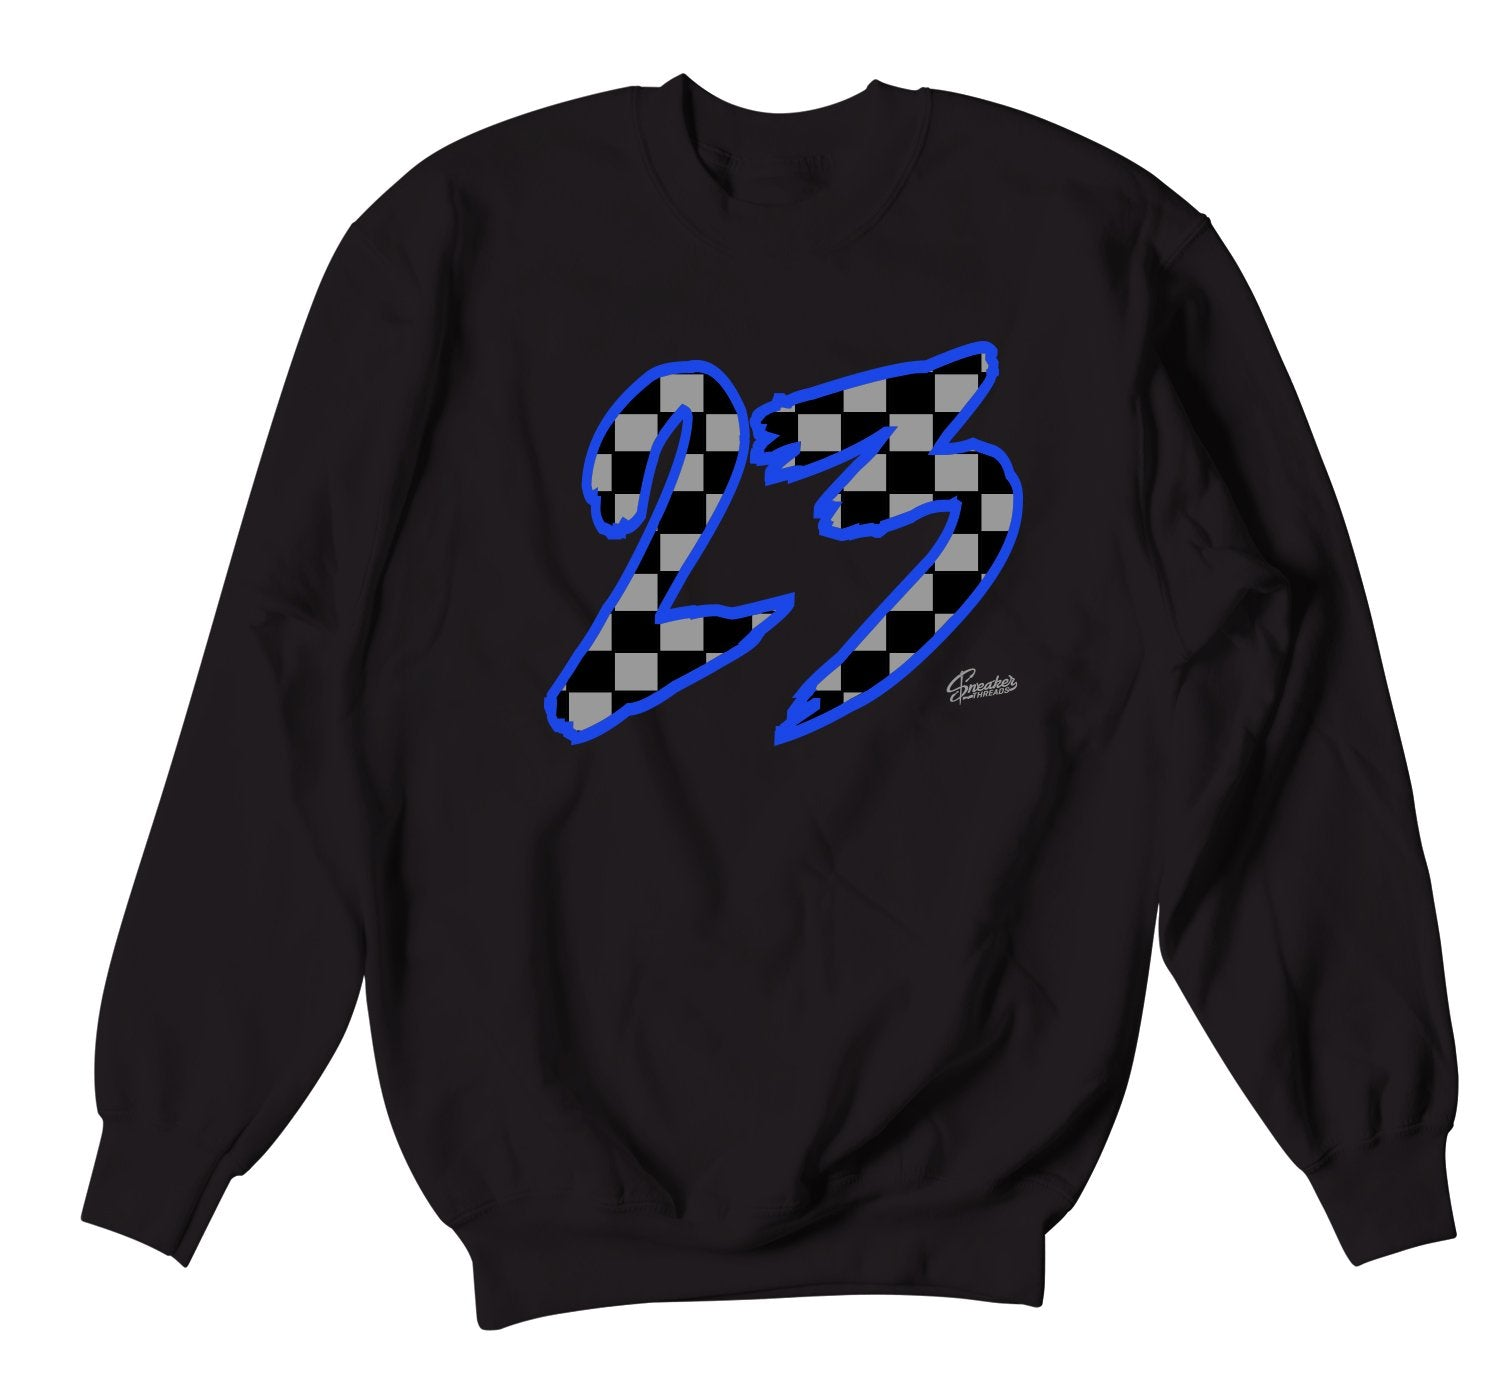 Jordan 9 racer blue retro sneaker collection matching sweater